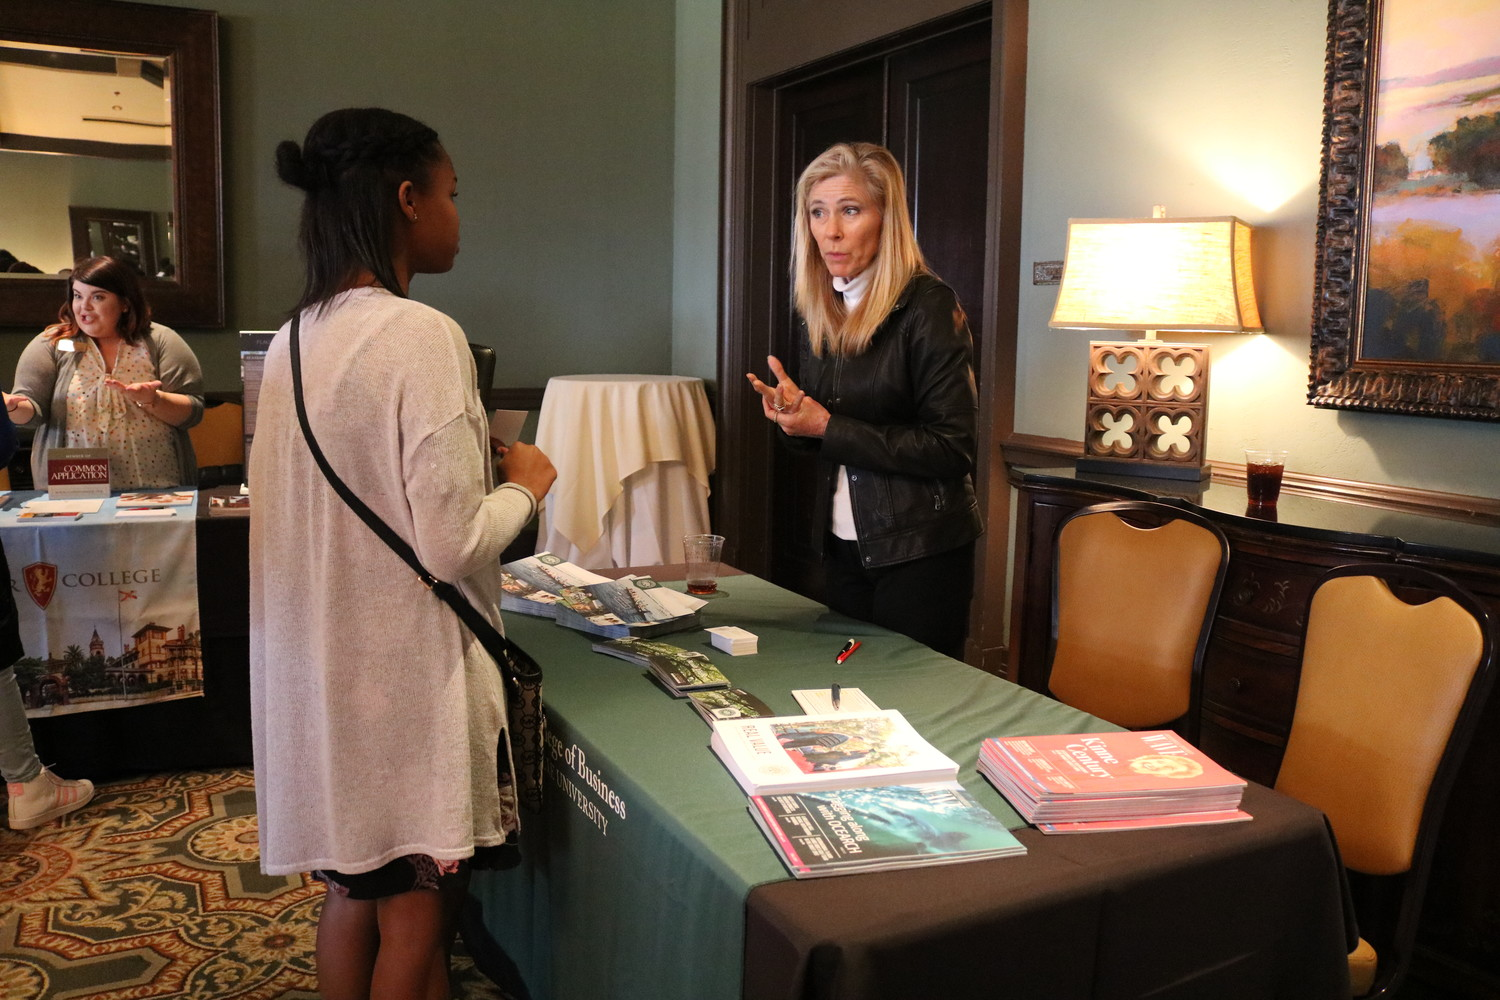 A student talking with a vendor about career opportunities.